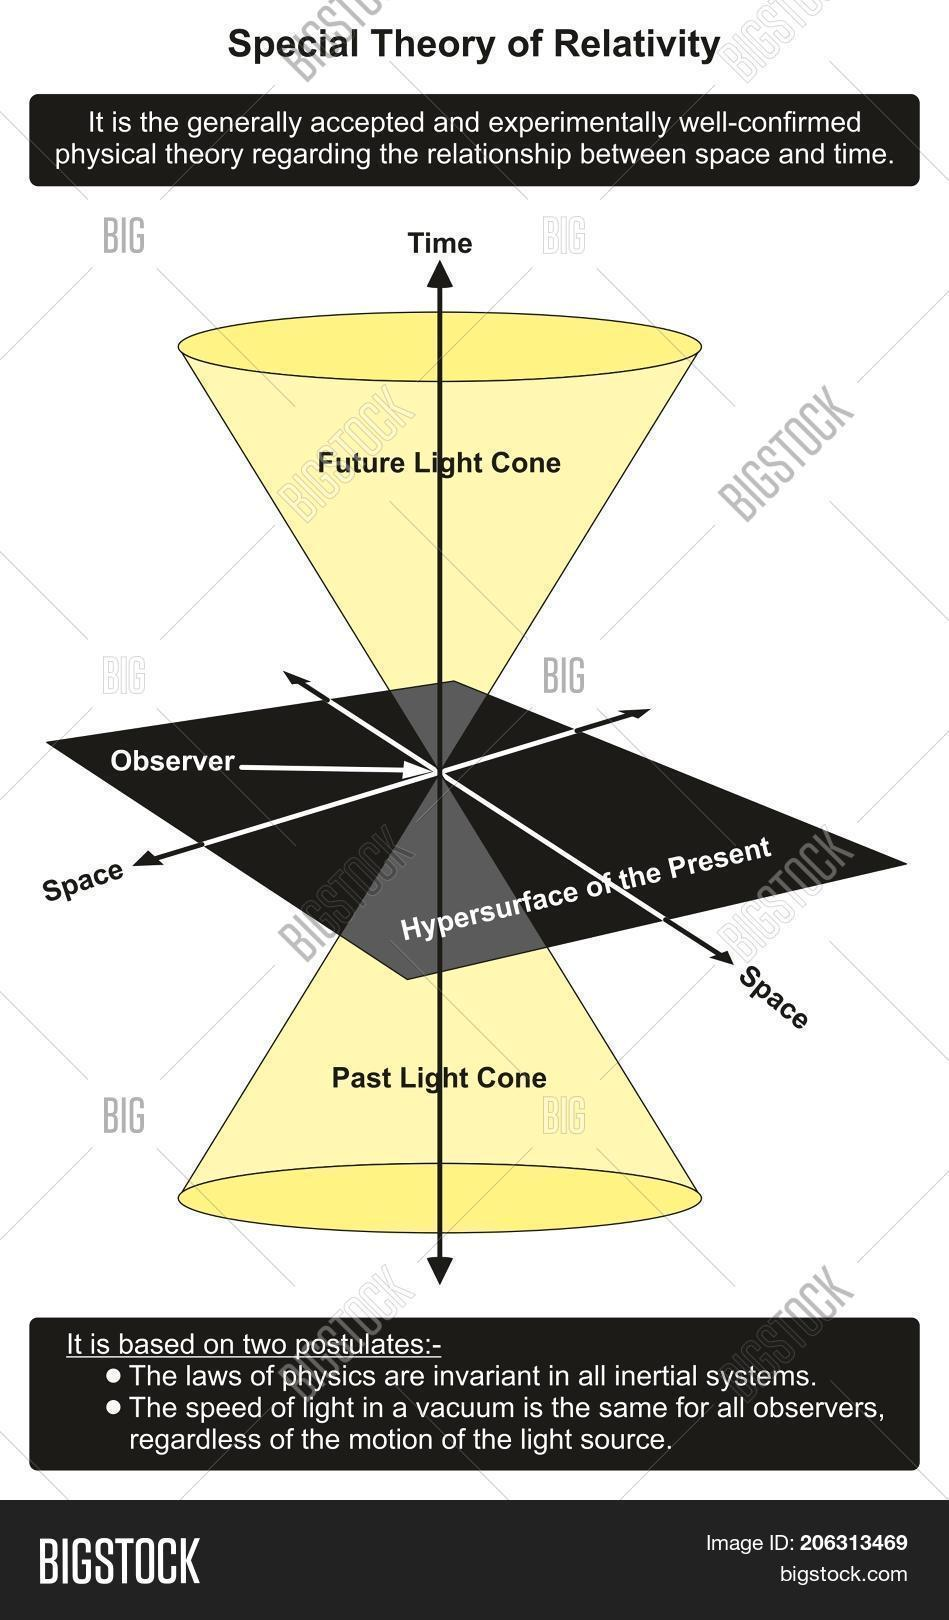 hight resolution of special theory of relativity infographic diagram showing relationship between time and space in past present and